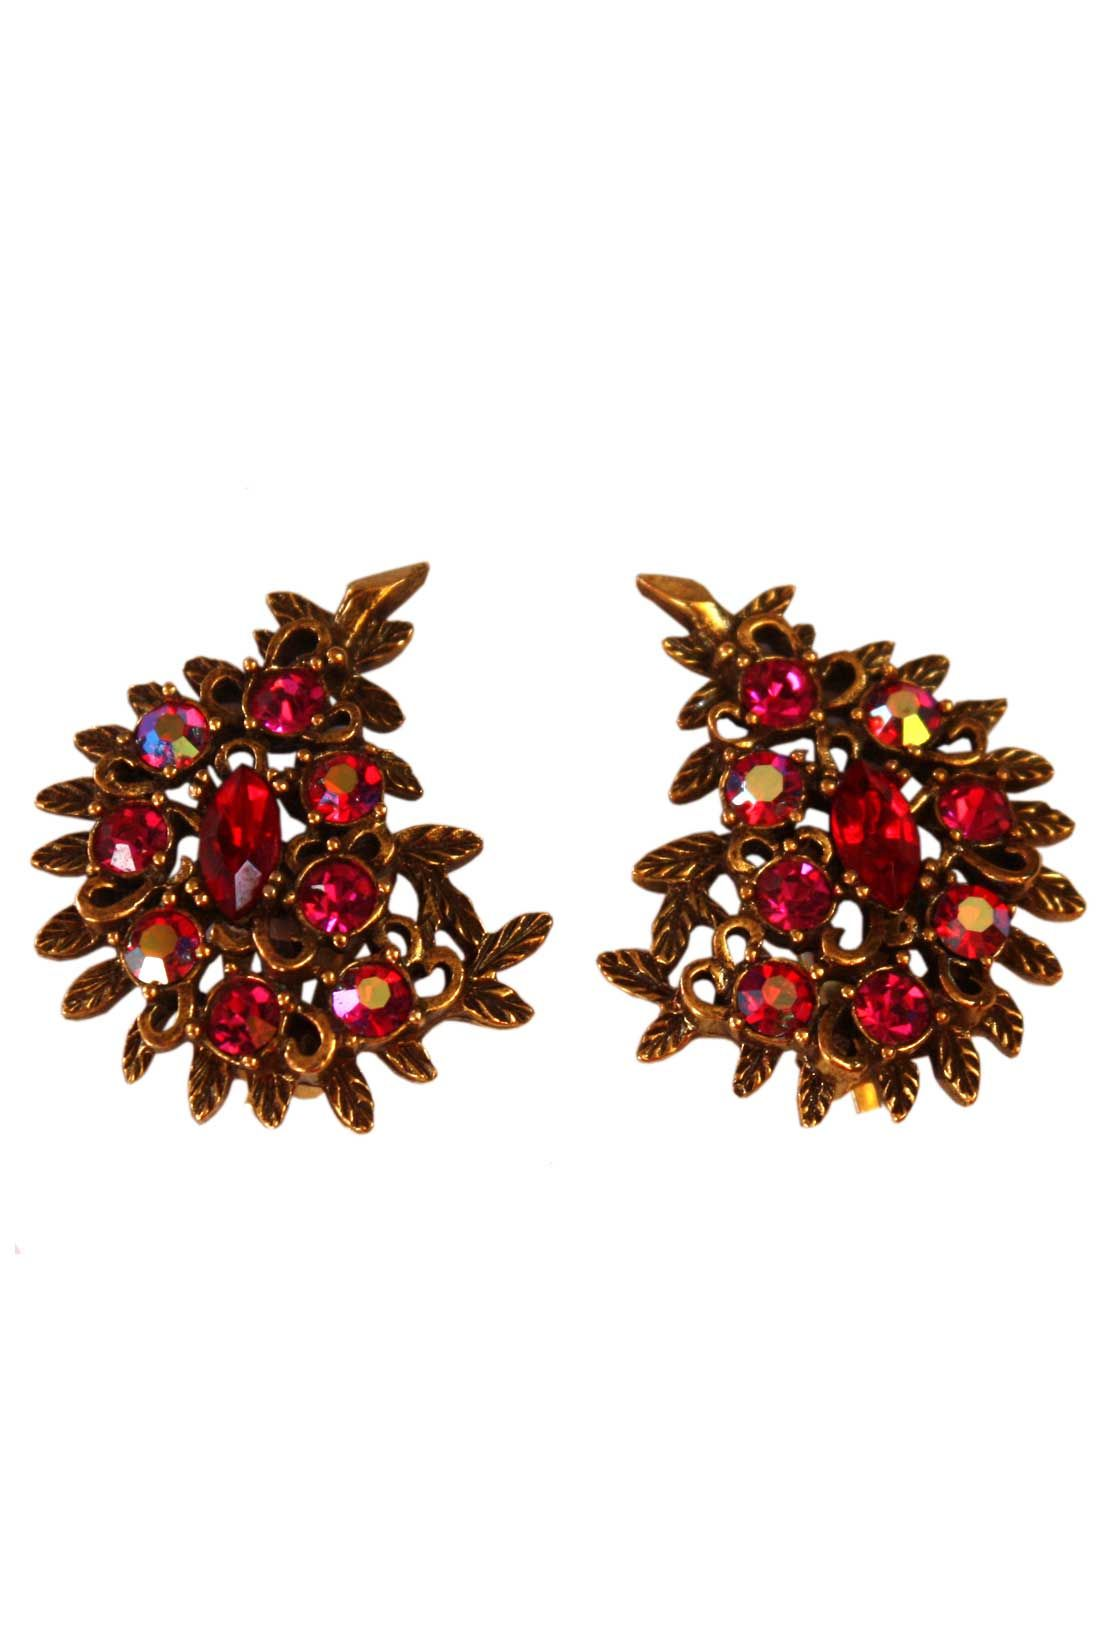 Clip on these vintage earrings now!